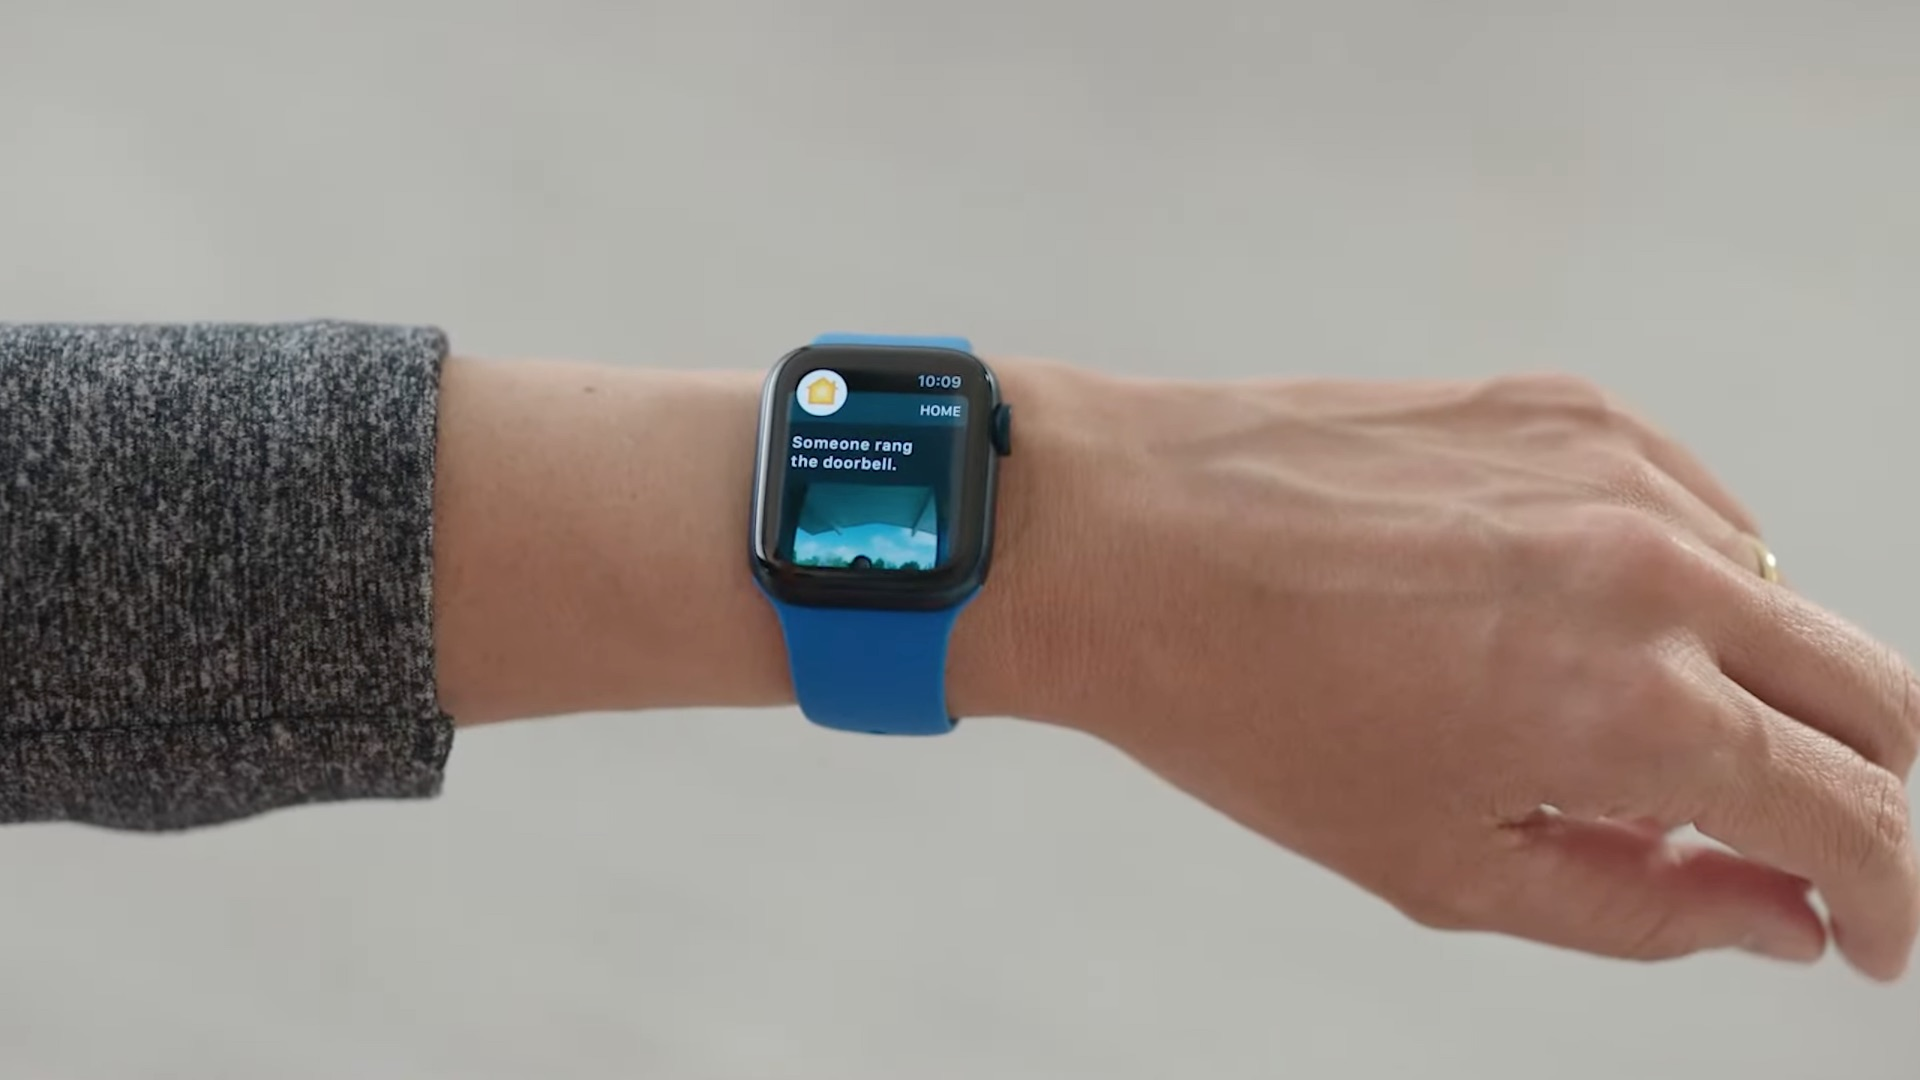 A photo showing a wrist with an Apple Watch running the Home app on watchOS 8 with the doorbell security camera video displayed on the screen